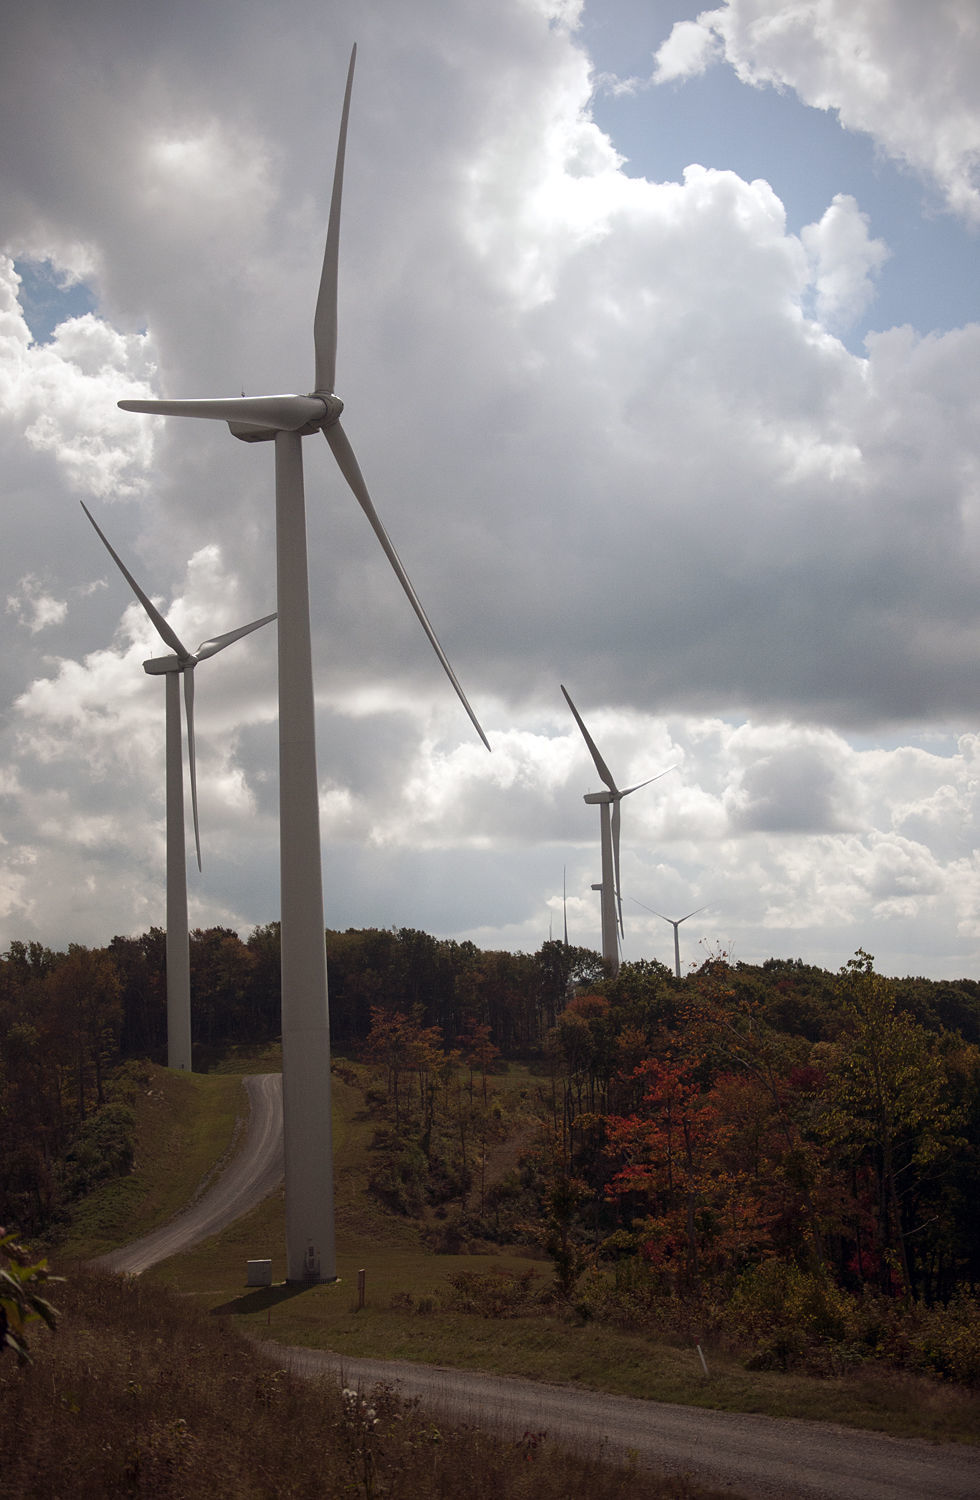 Wind energy still isn't mainstream in the Mountain State